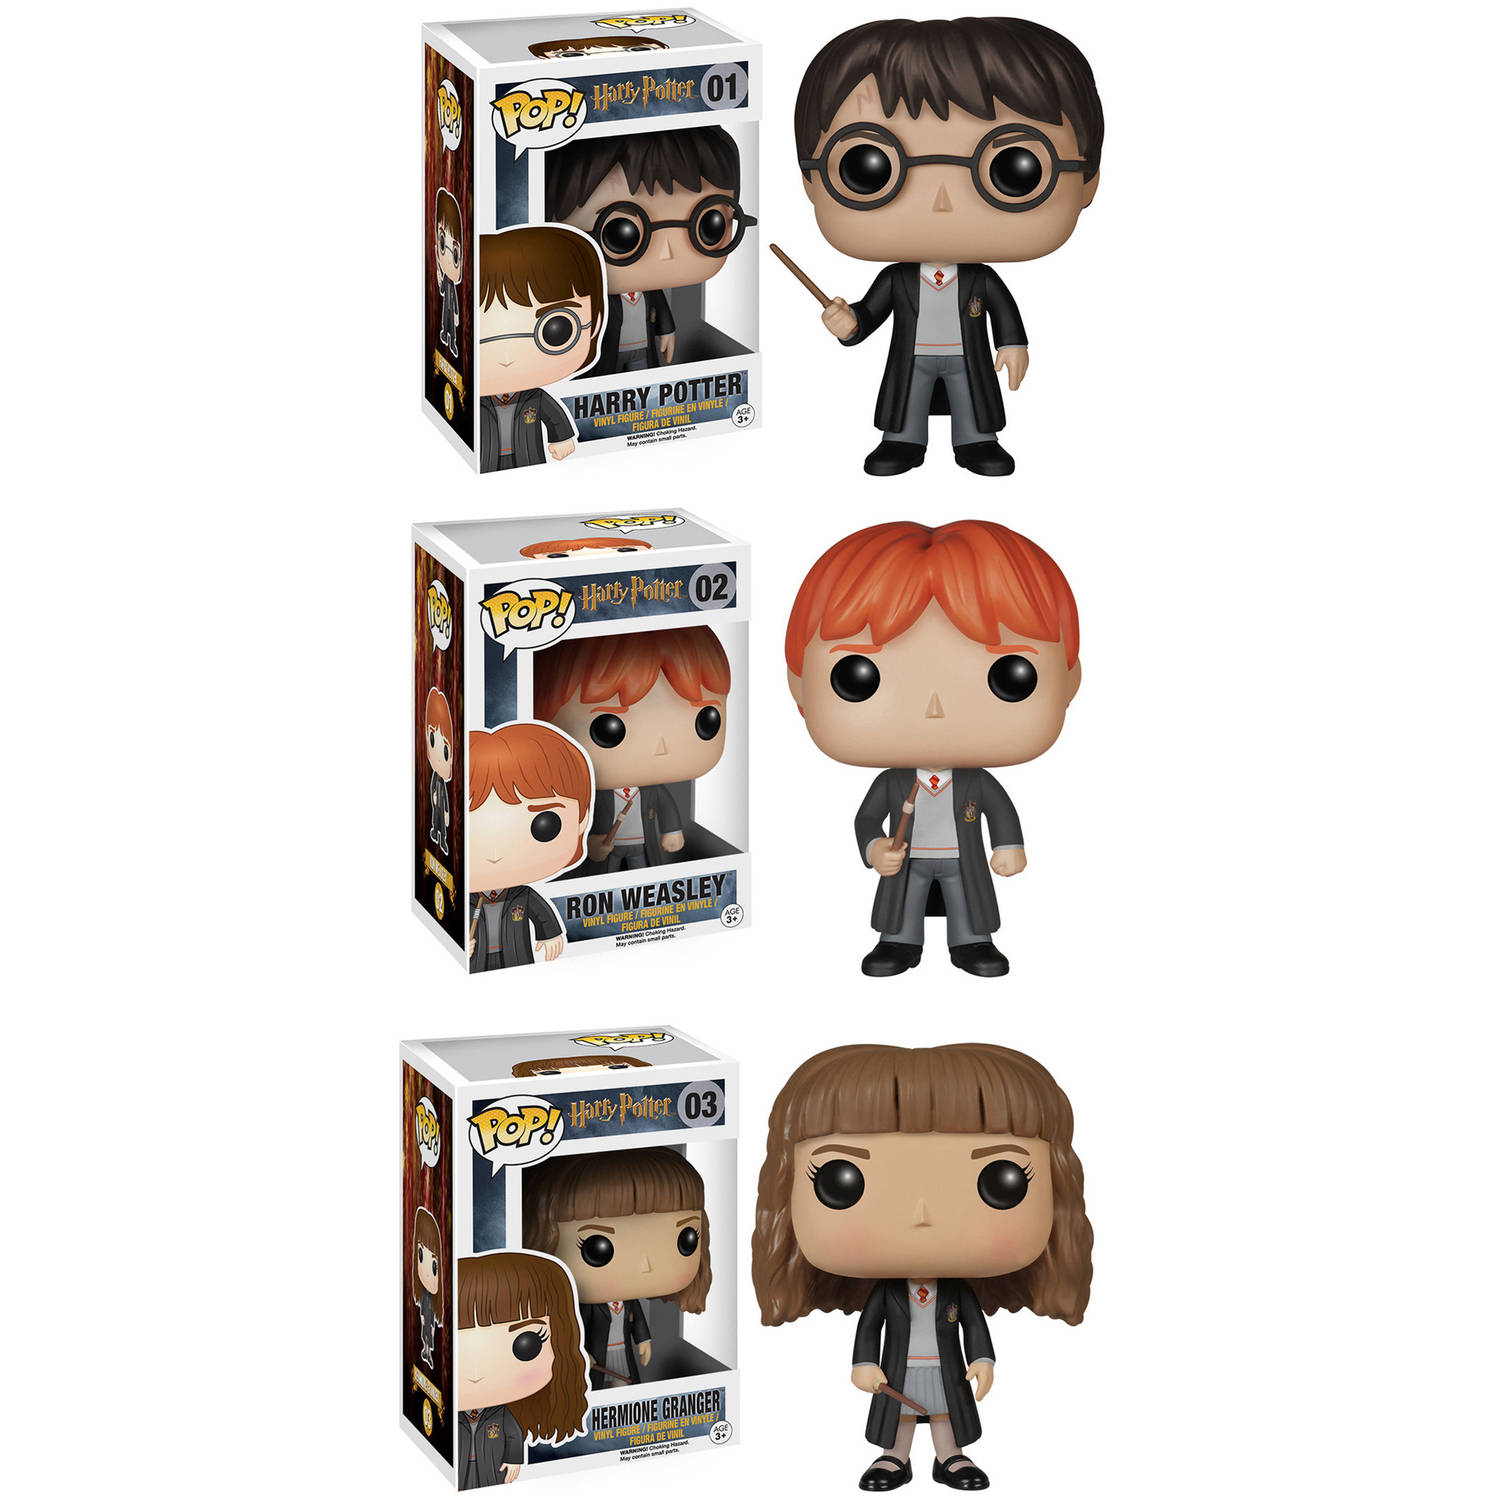 Funko Harry Potter POP! Movie Vinyl Collectors Set: Harry Potter, Ron Weasley and Hermione